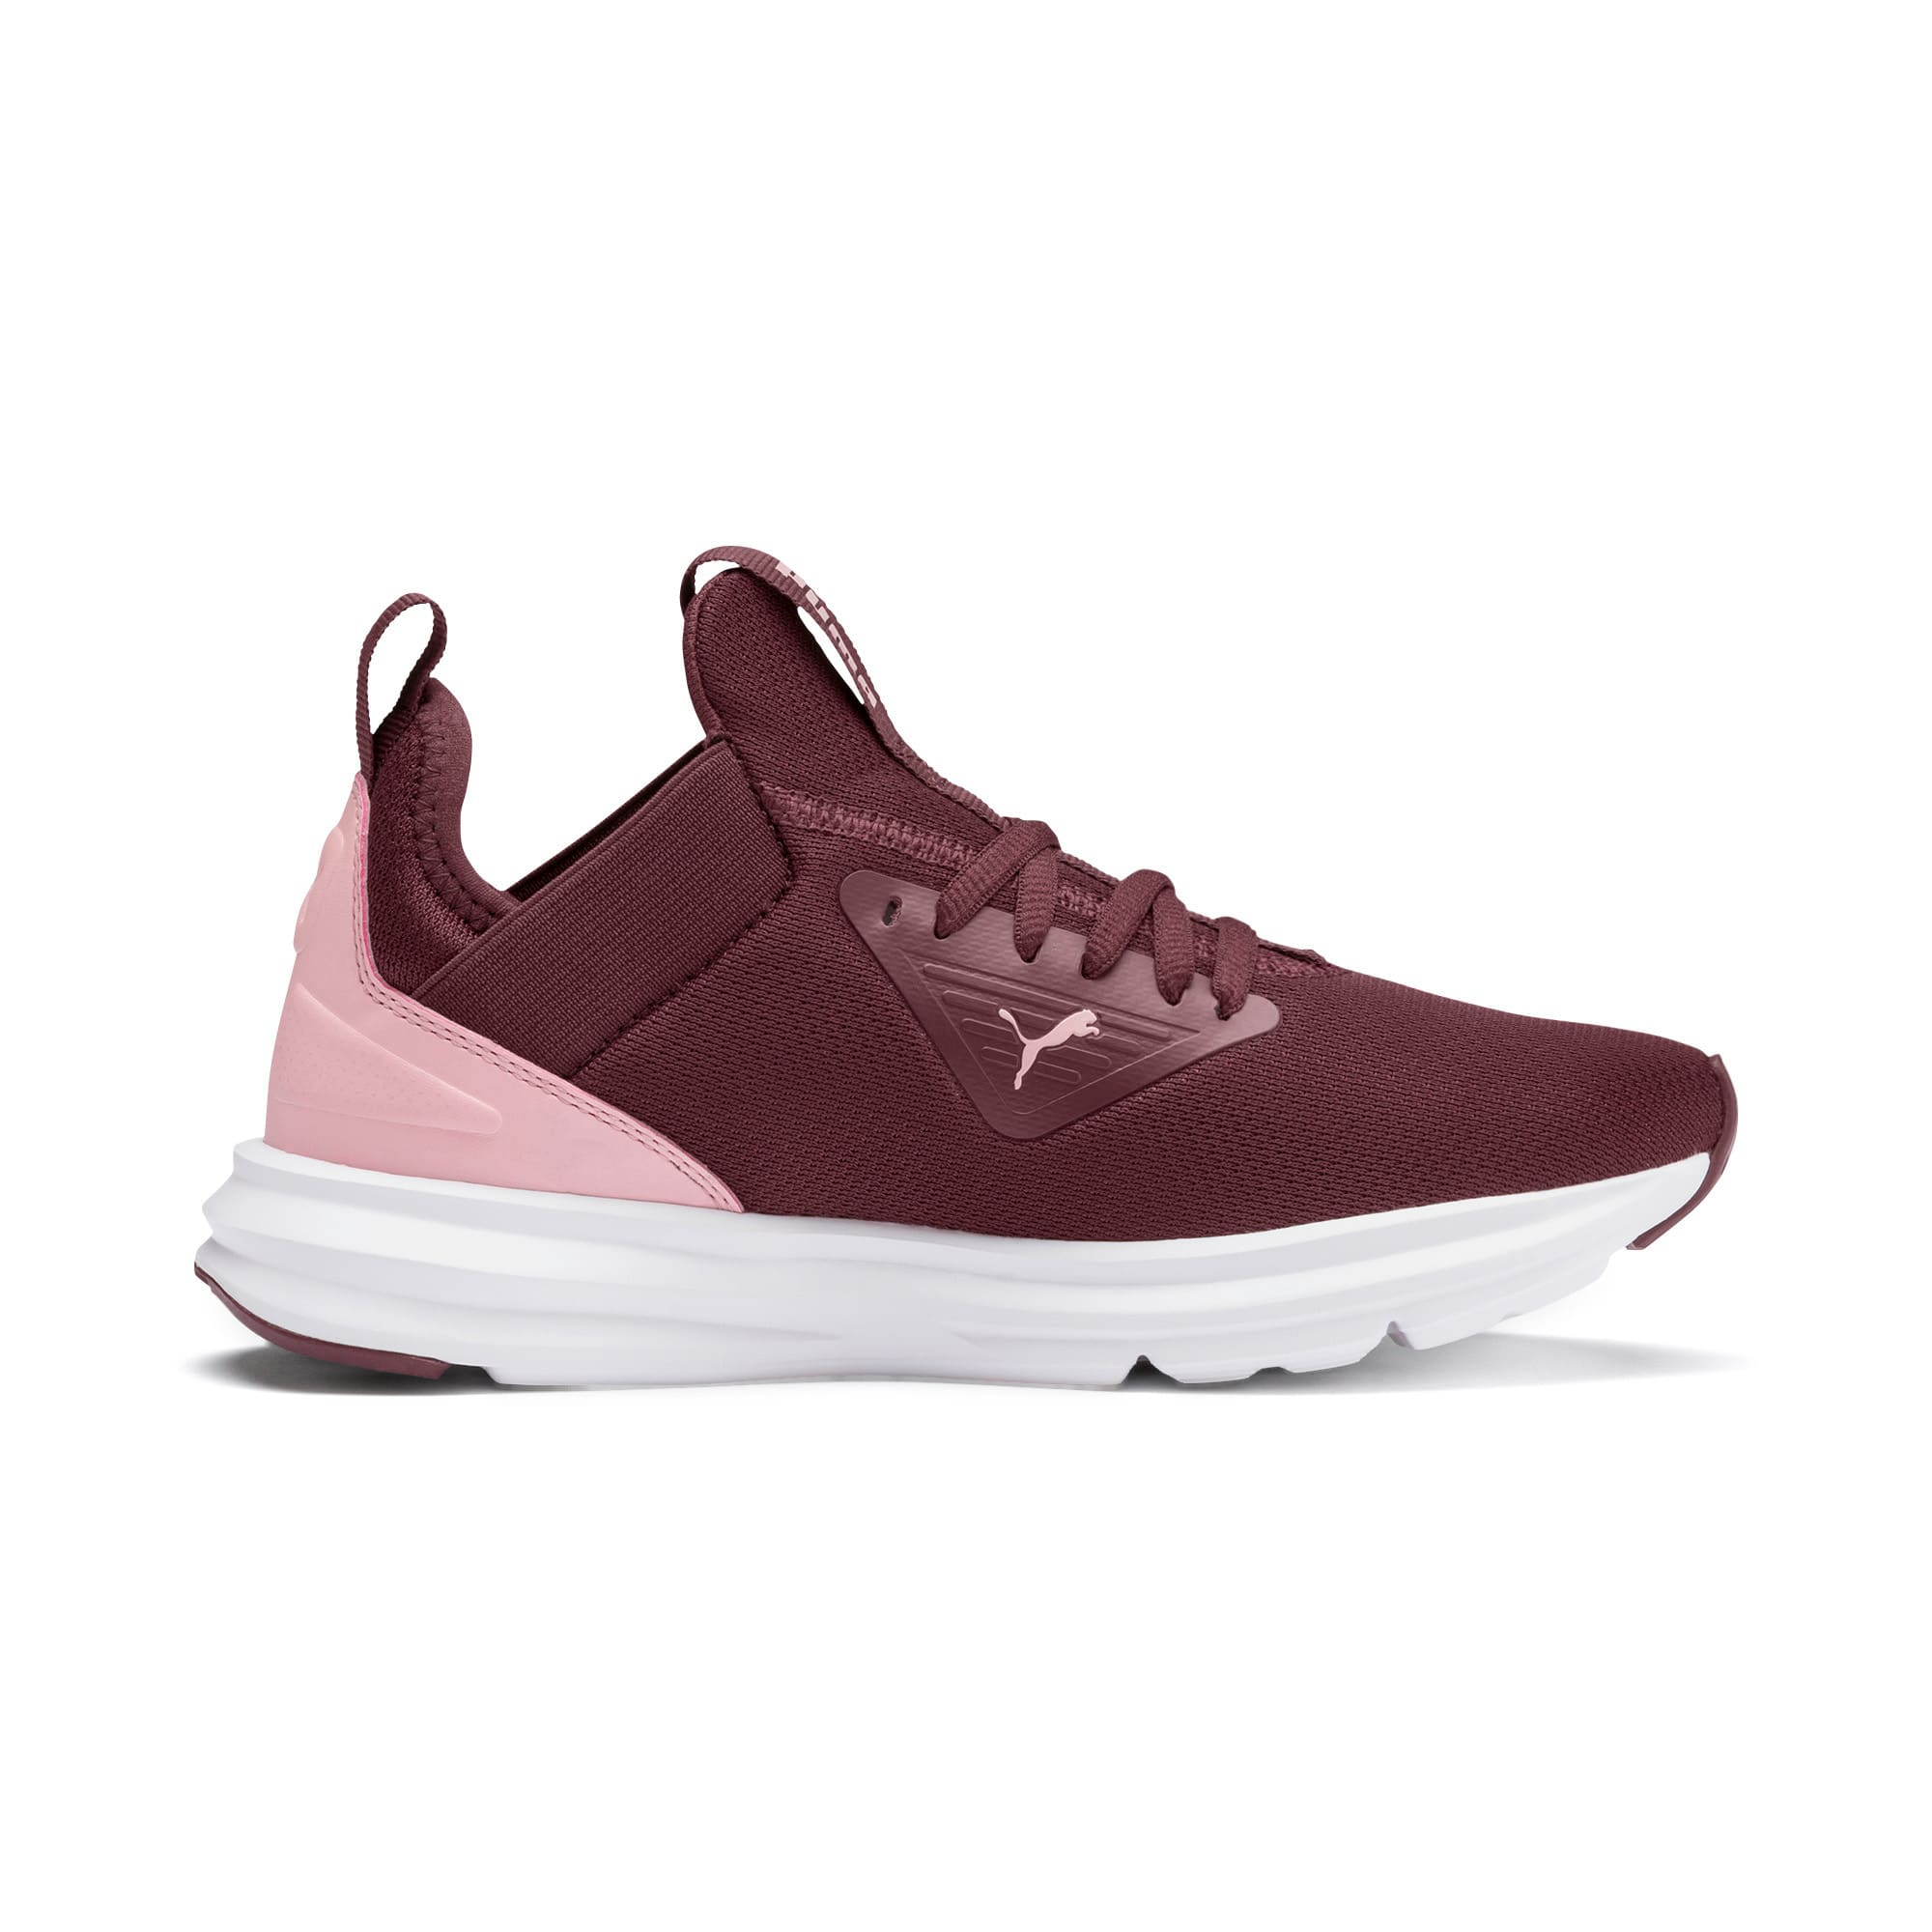 Thumbnail 5 of Enzo Beta Shine Sneakers JR, Vineyard Wine-Bridal Rose, medium